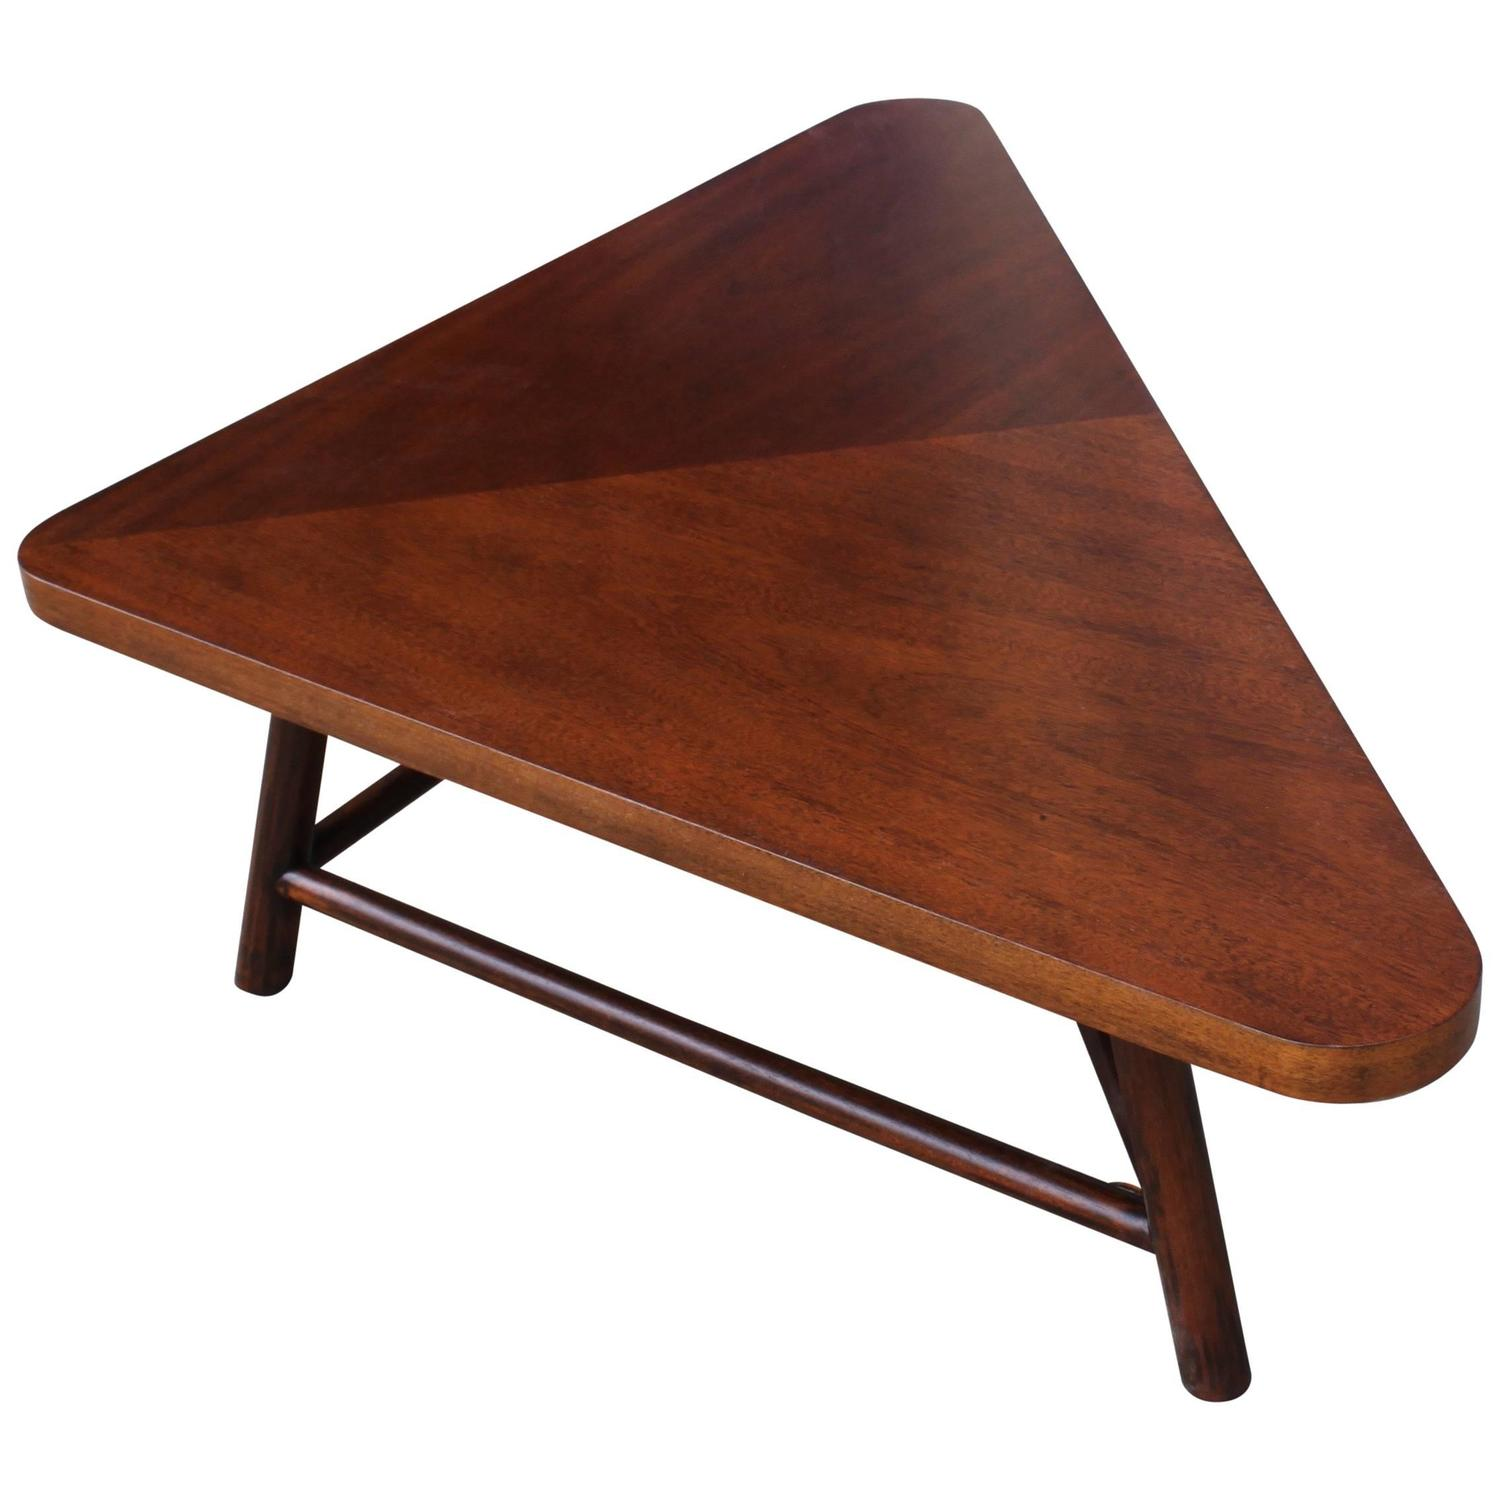 Robsjohn Gibbings Triangular Coffee Table At 1stdibs